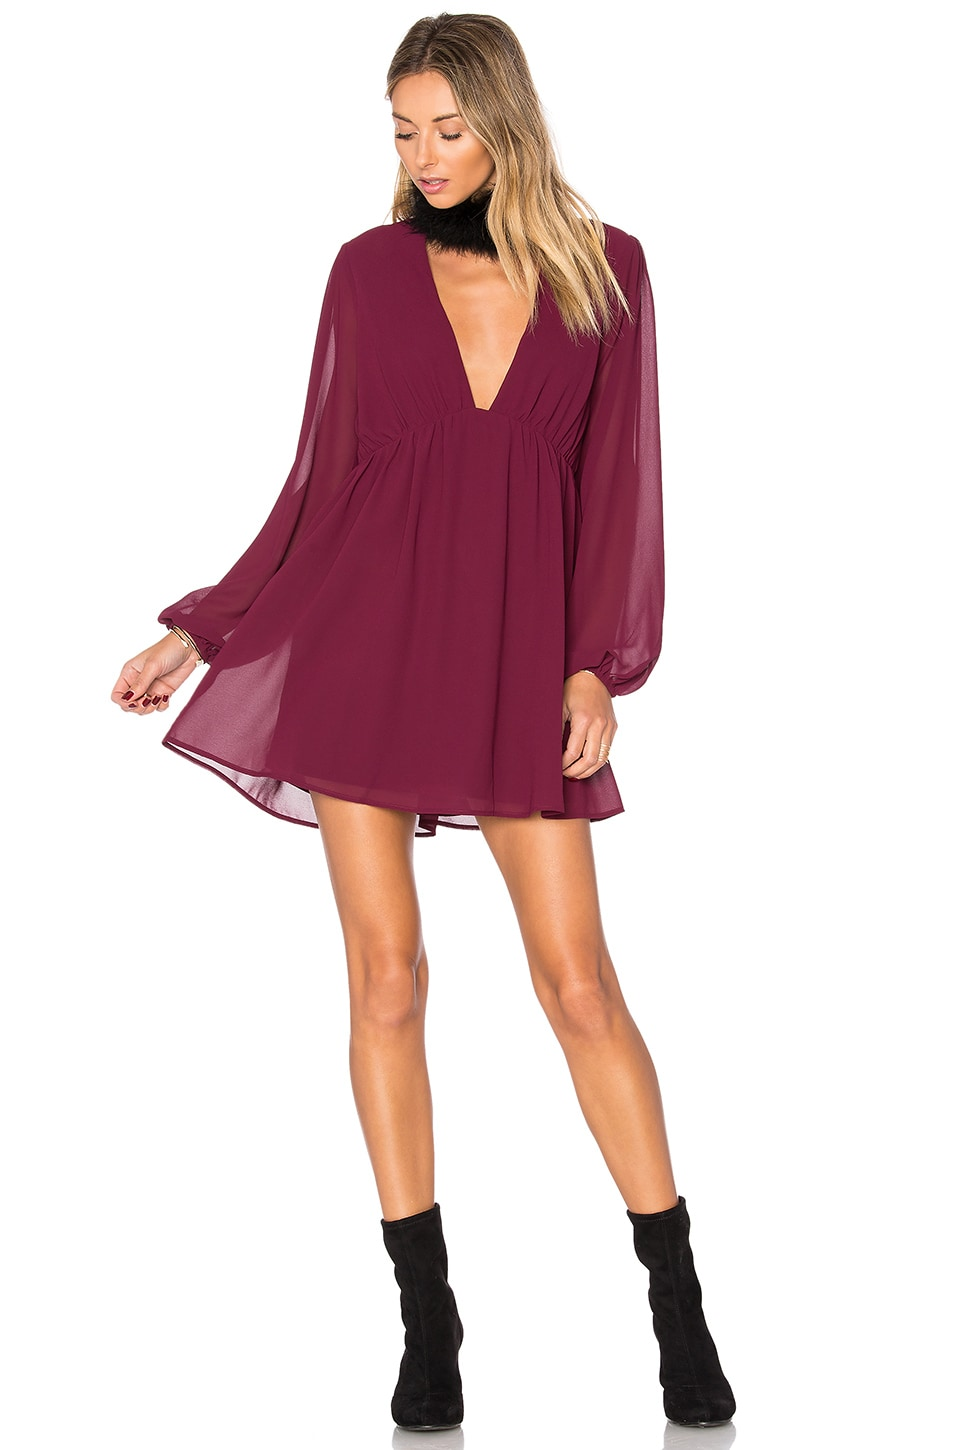 x REVOLVE Dakota Dress by Show Me Your Mumu